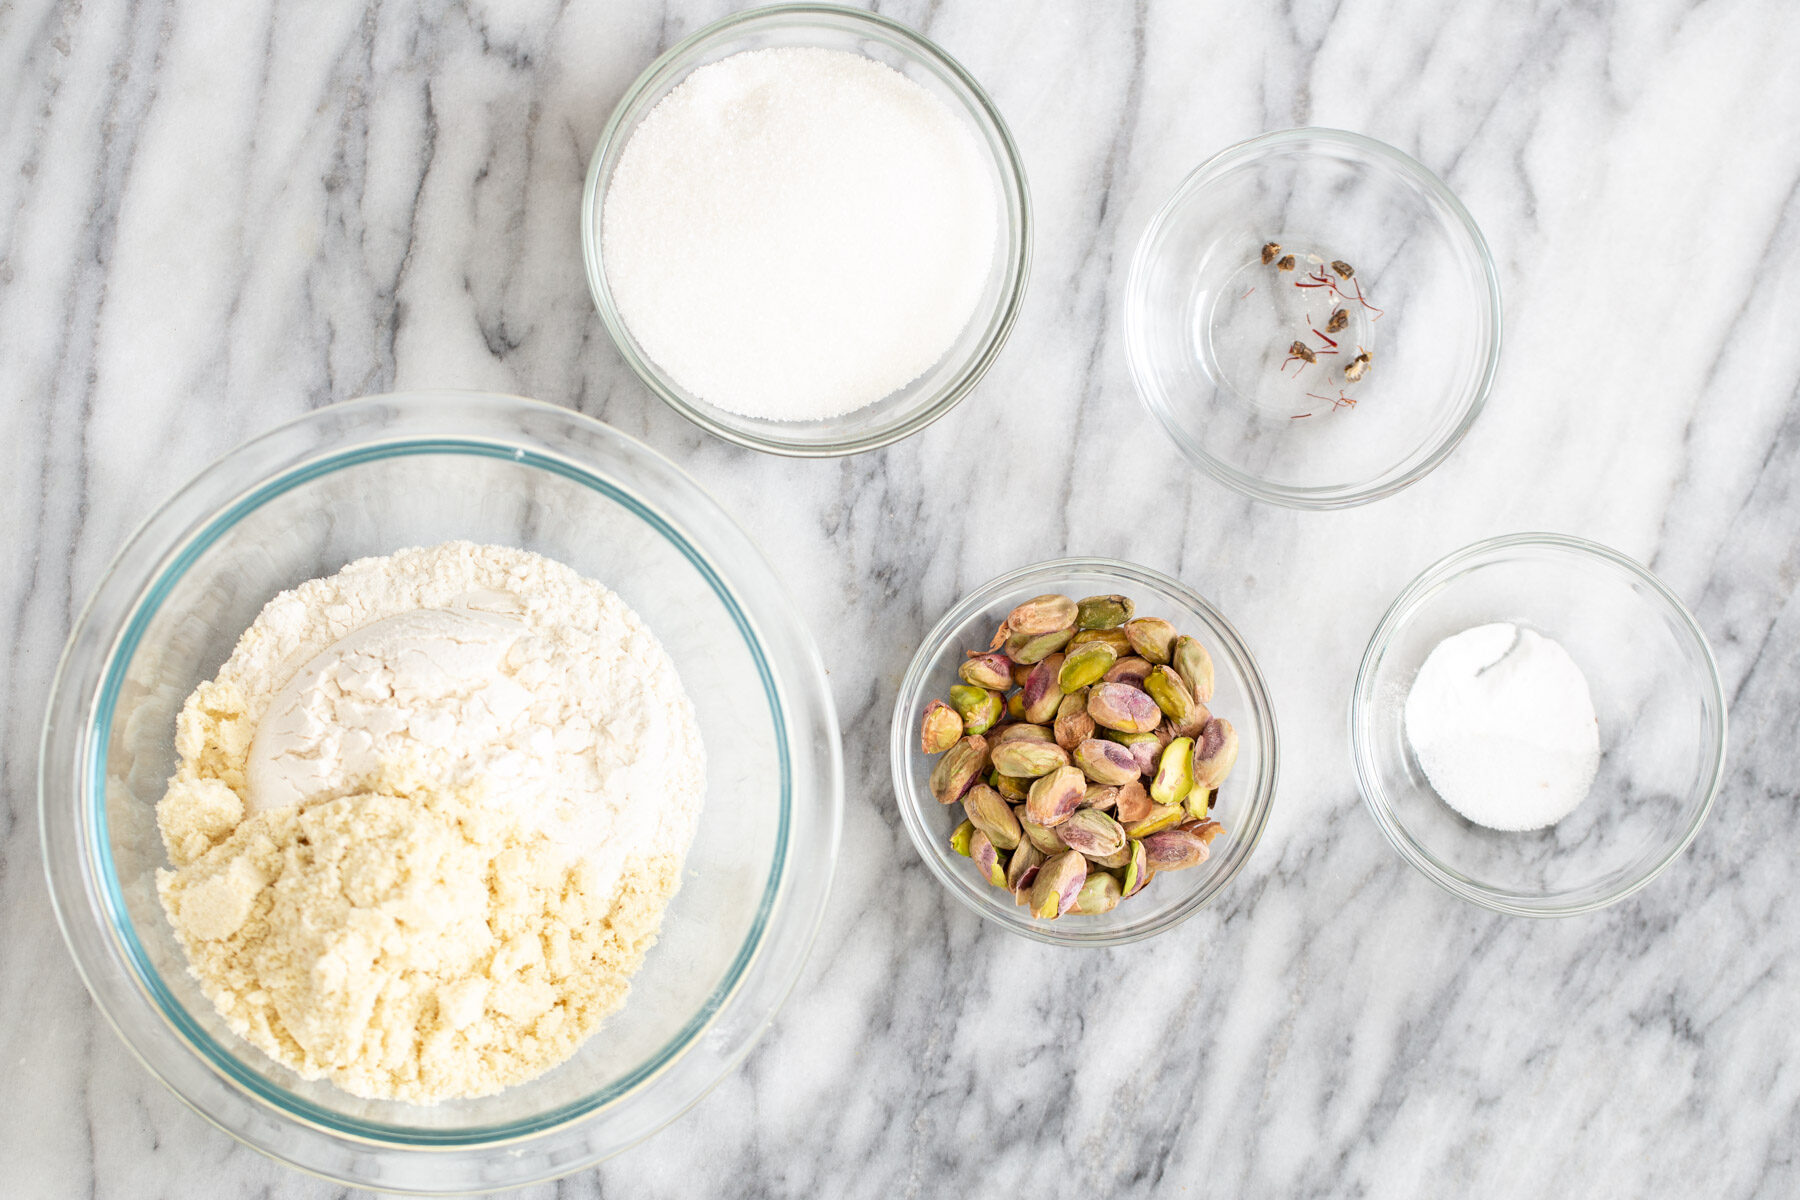 ingredients for vegan pistachio cookie recipe on a marble kitchen counter